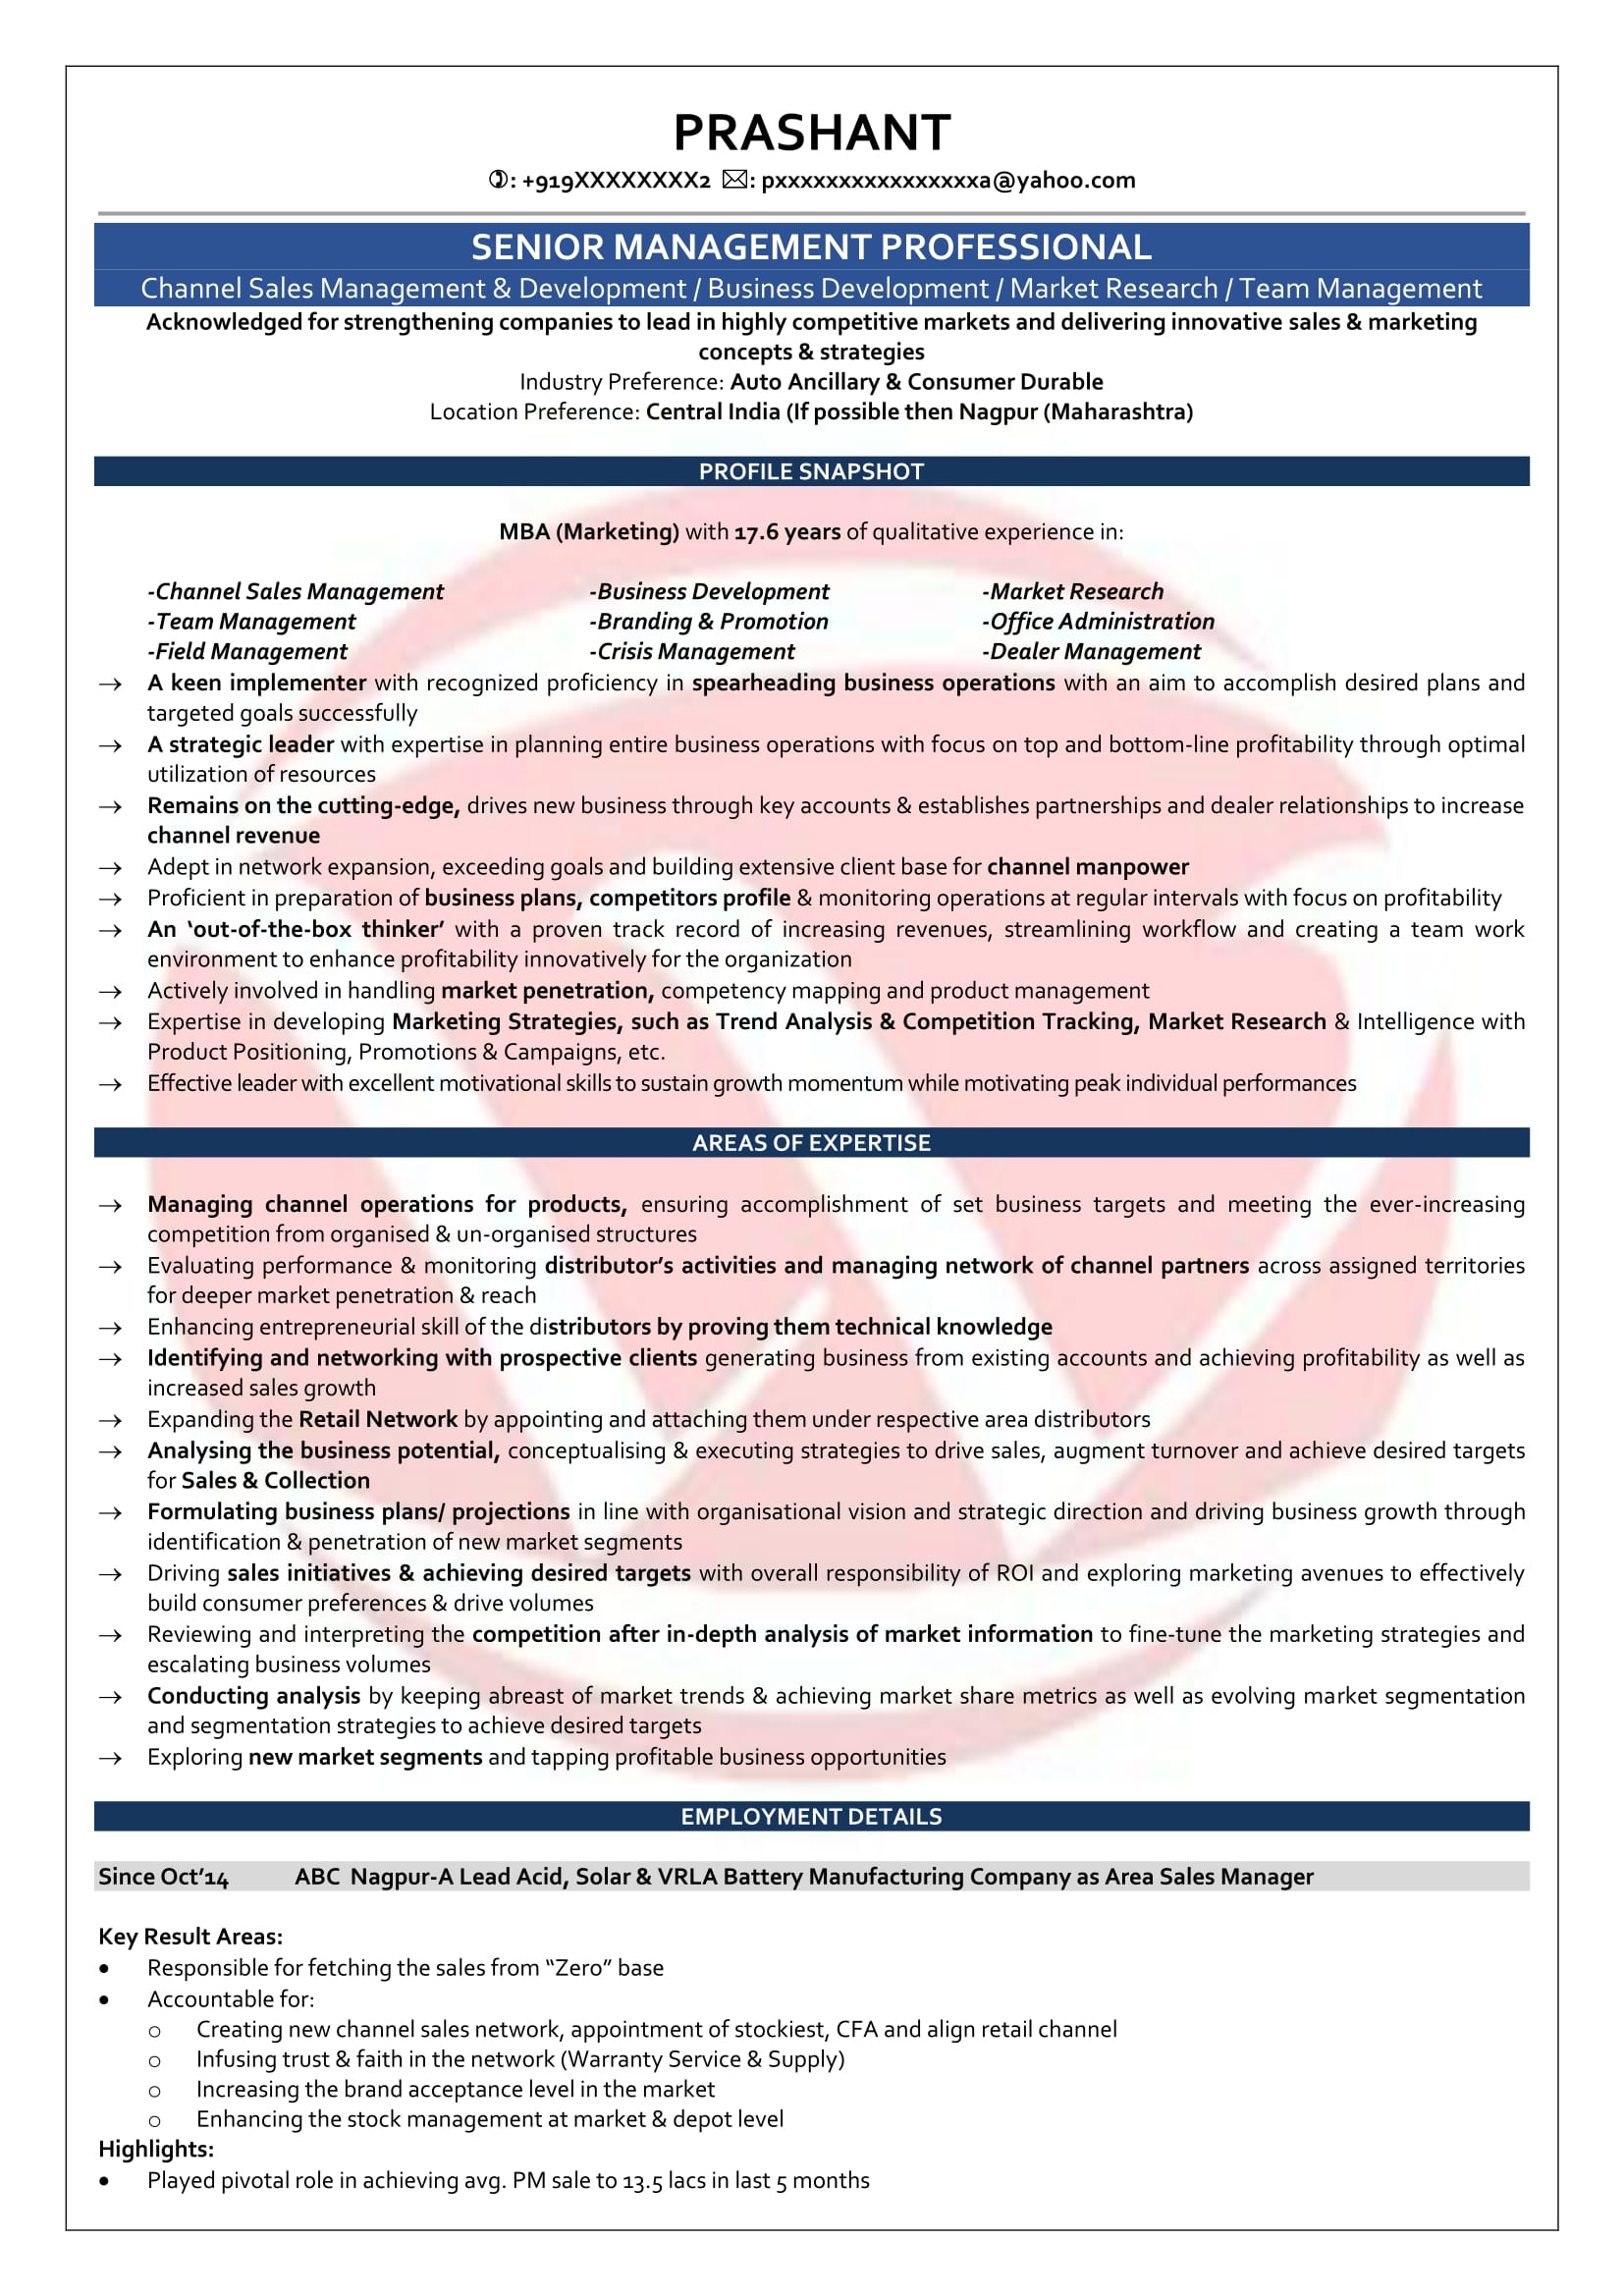 resume format for 5 year experienced it professionals